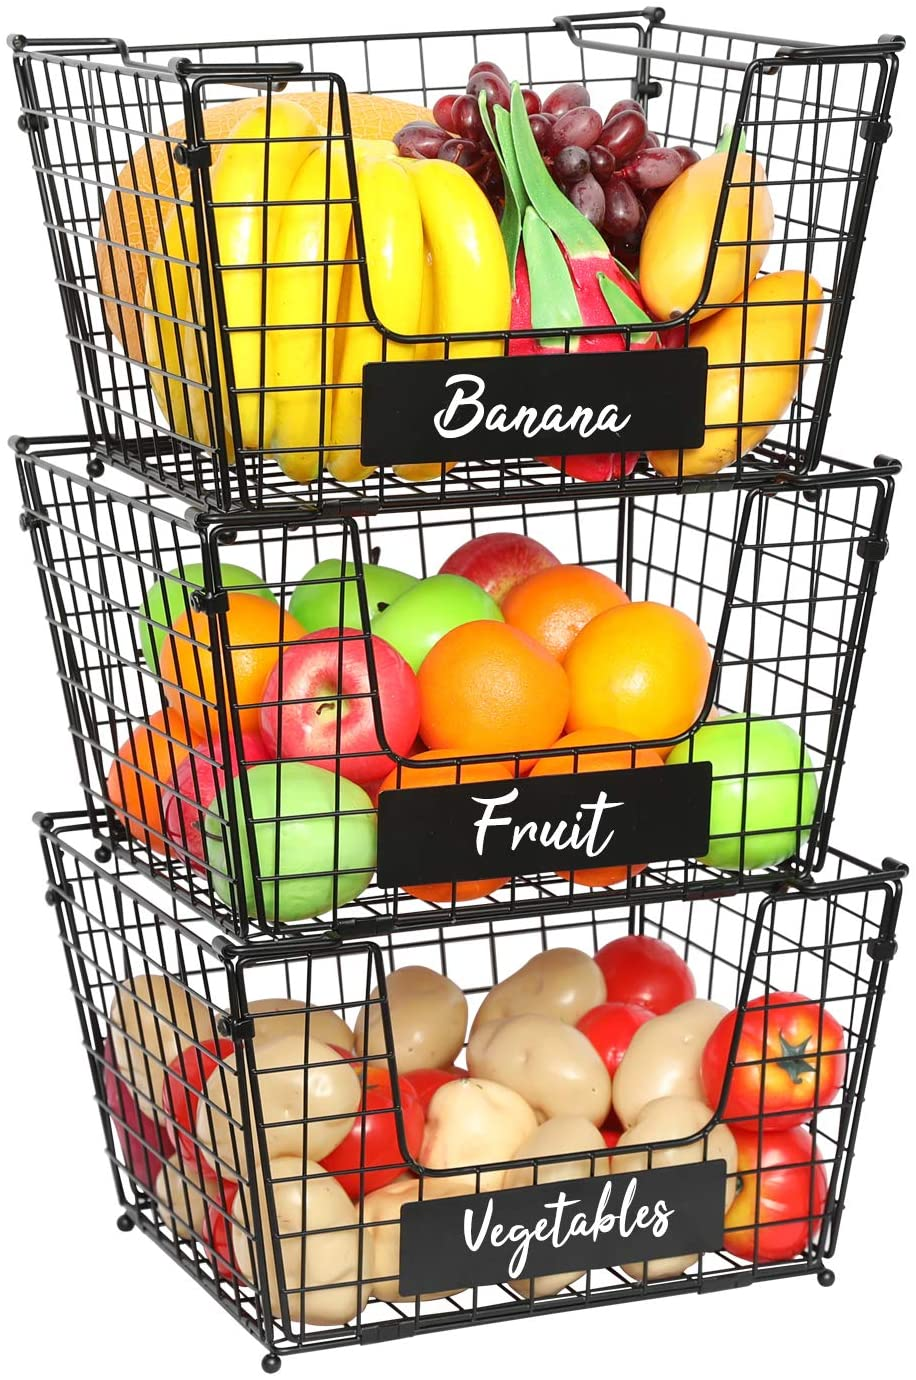 X-cosrack 3 Tier Foldable Wire Basket Stackable Fruit Vegetable Storage Basket with Name Plate Standing Metal Mesh Bin Organizer for Kitchen Counter Pantry Cabinet 14.1''L x 12.5''W x 23.6''H